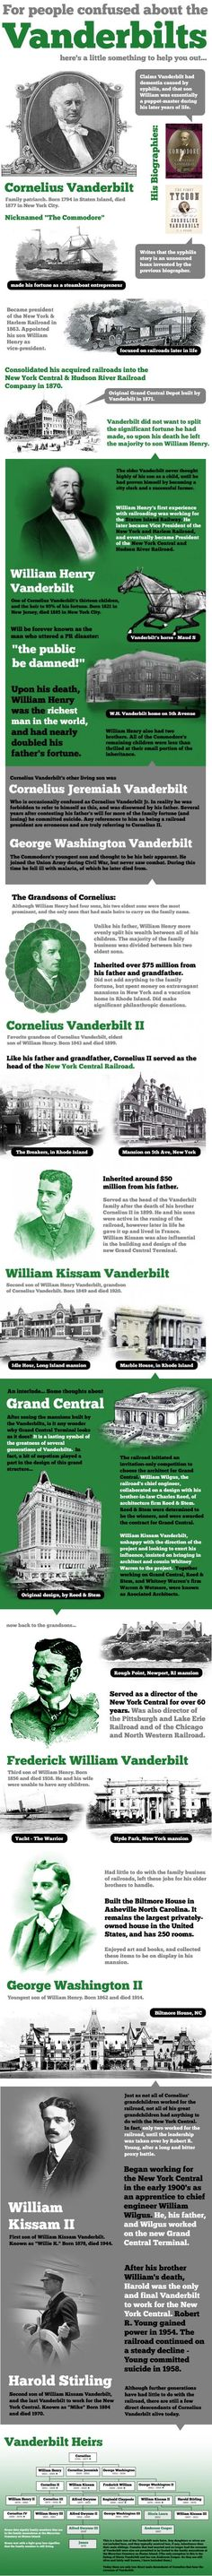 Railroads, Mansions and Money: The Vanderbilts in a nutshell